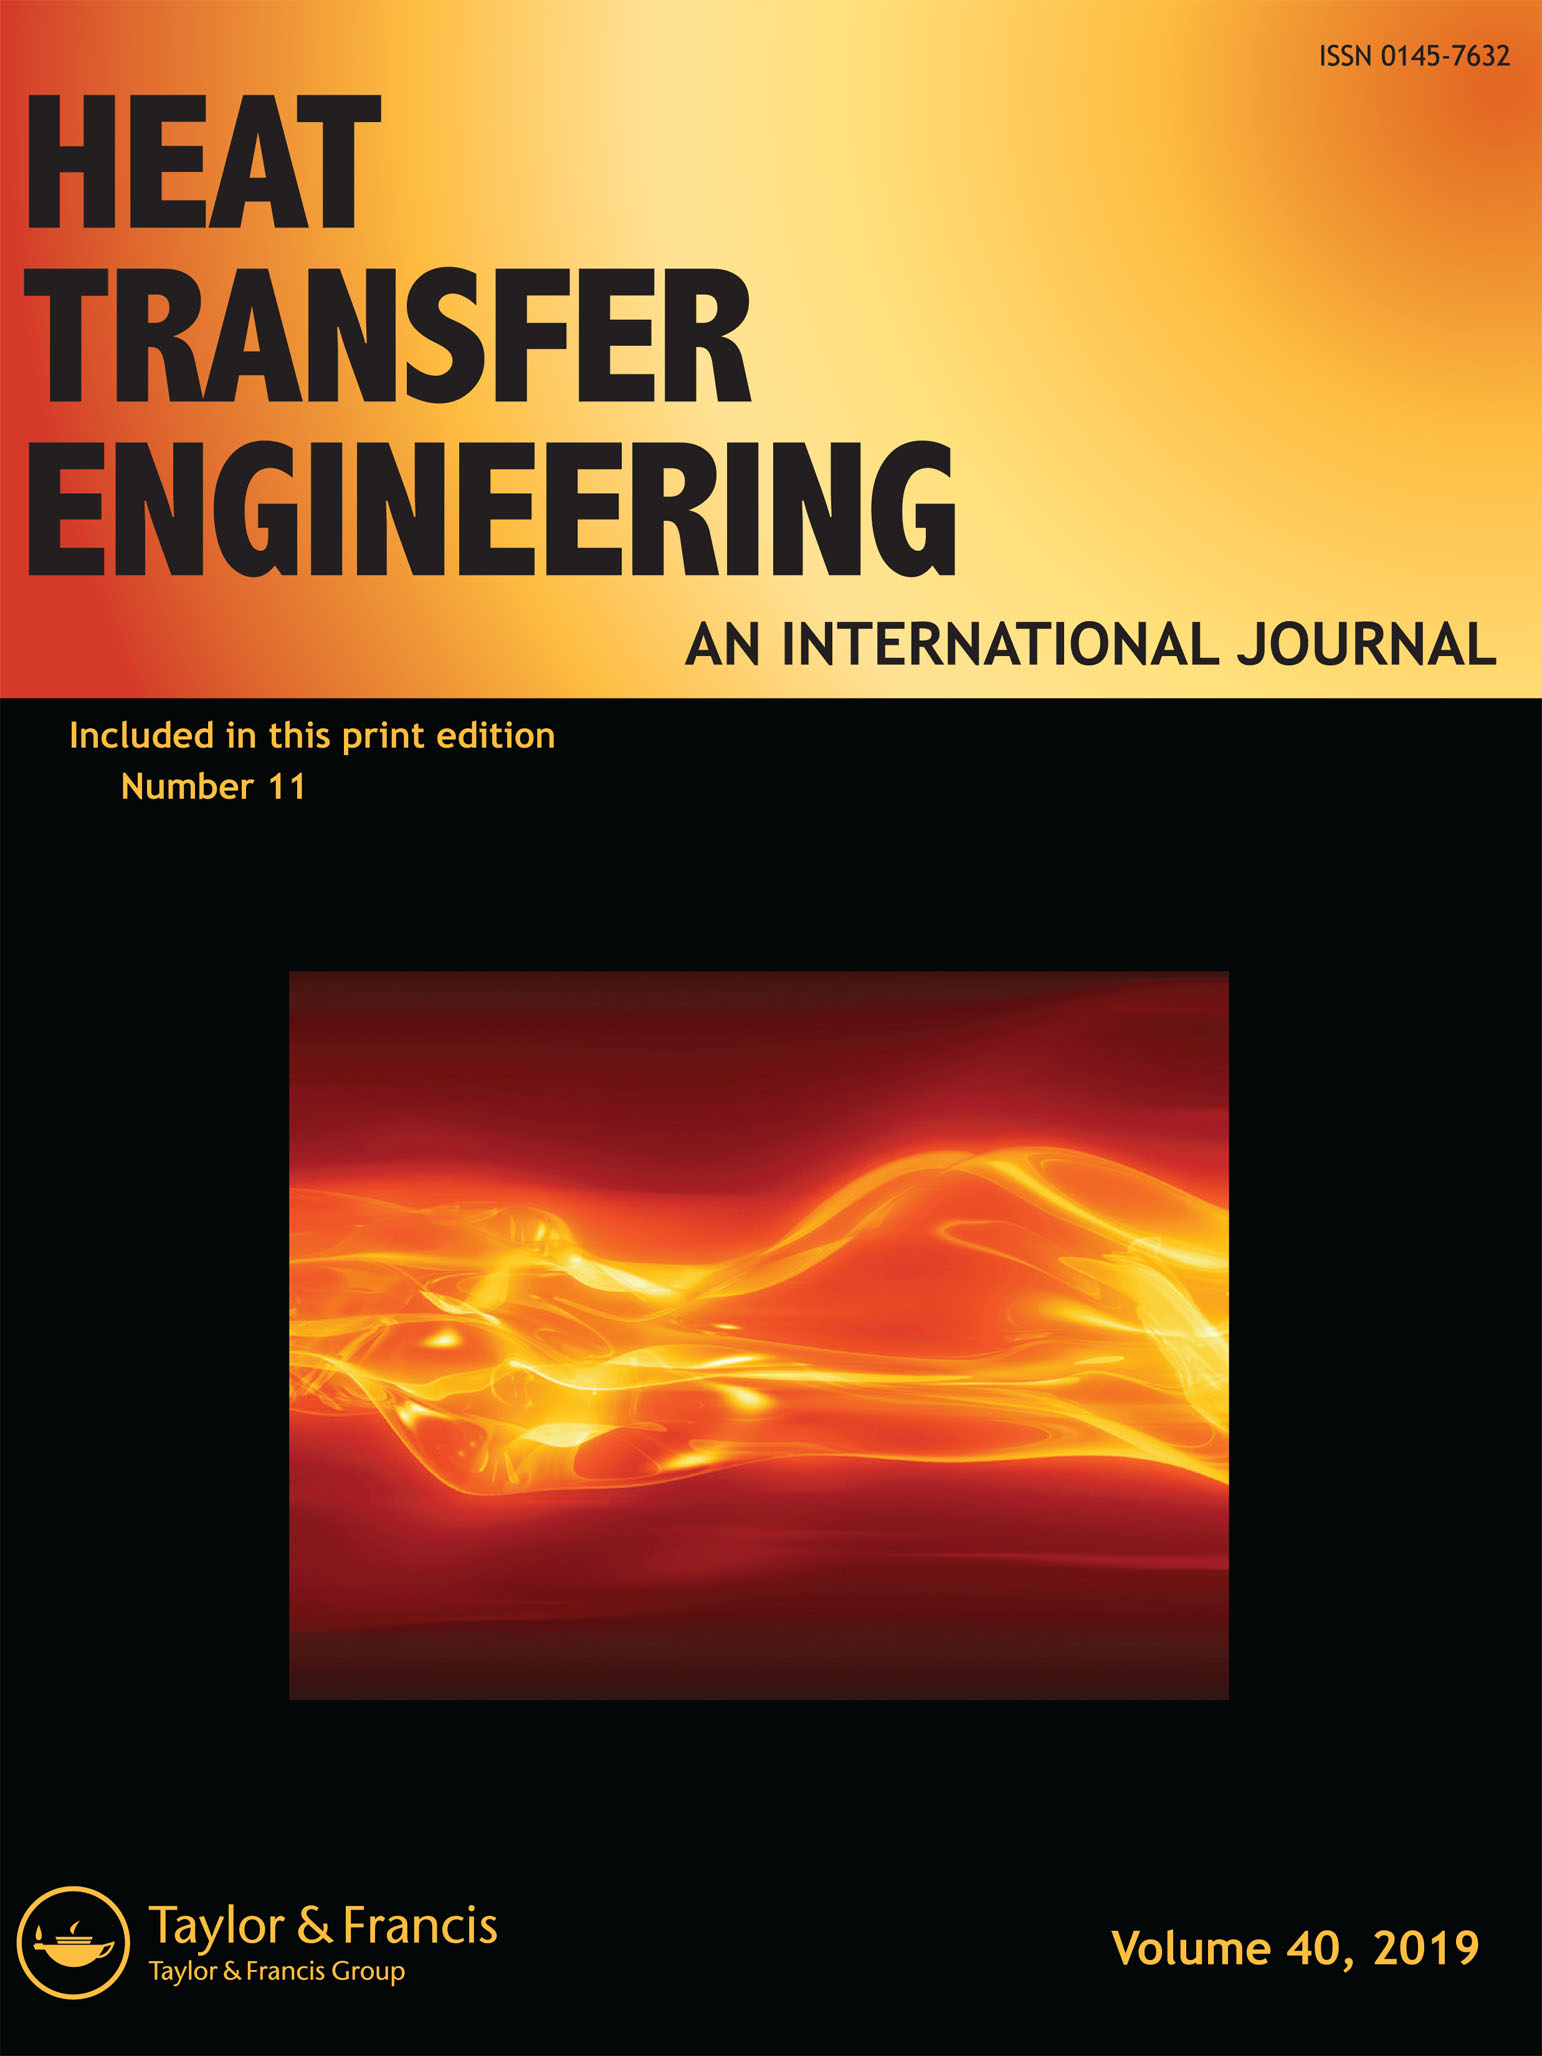 Modeling And Prediction Of Shell Side Fouling In Shell And Tube Heat Exchangers Heat Transfer Engineering Vol 40 No 11